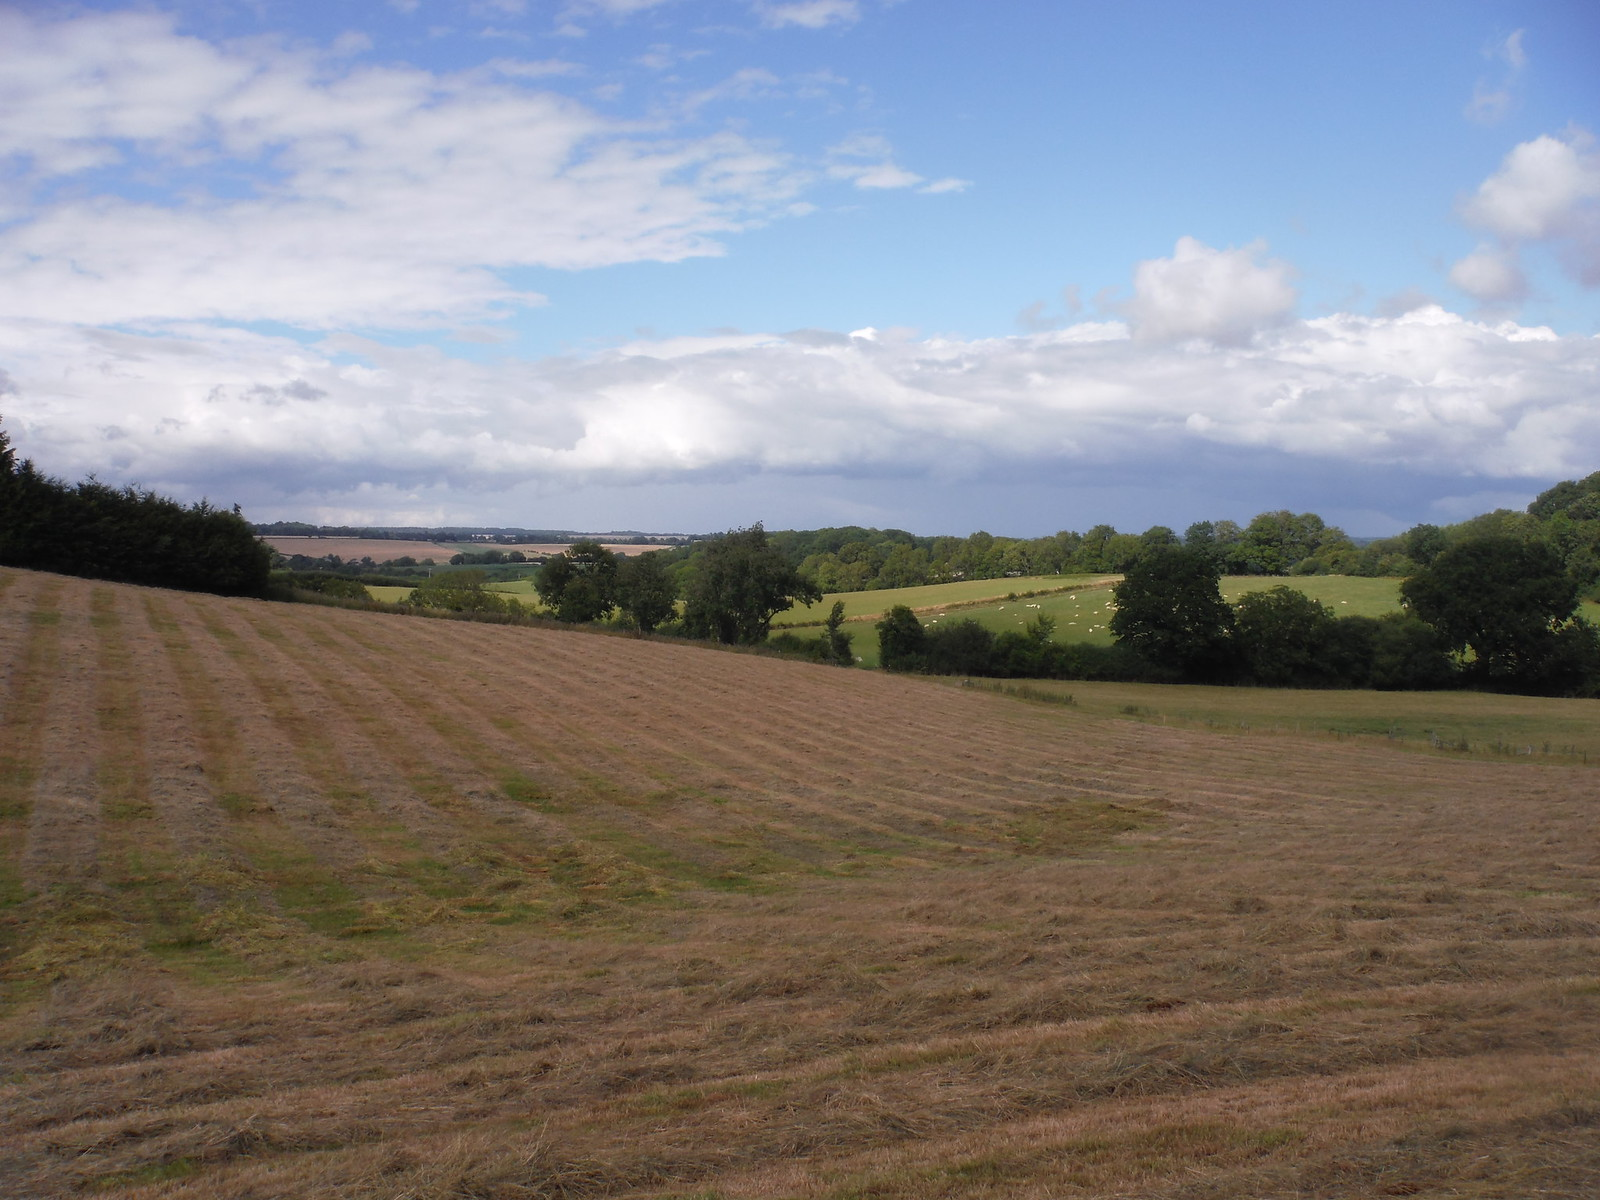 View from Converted Cottage SWC Walk 252 Tisbury Circular via Donhead St. Andrew